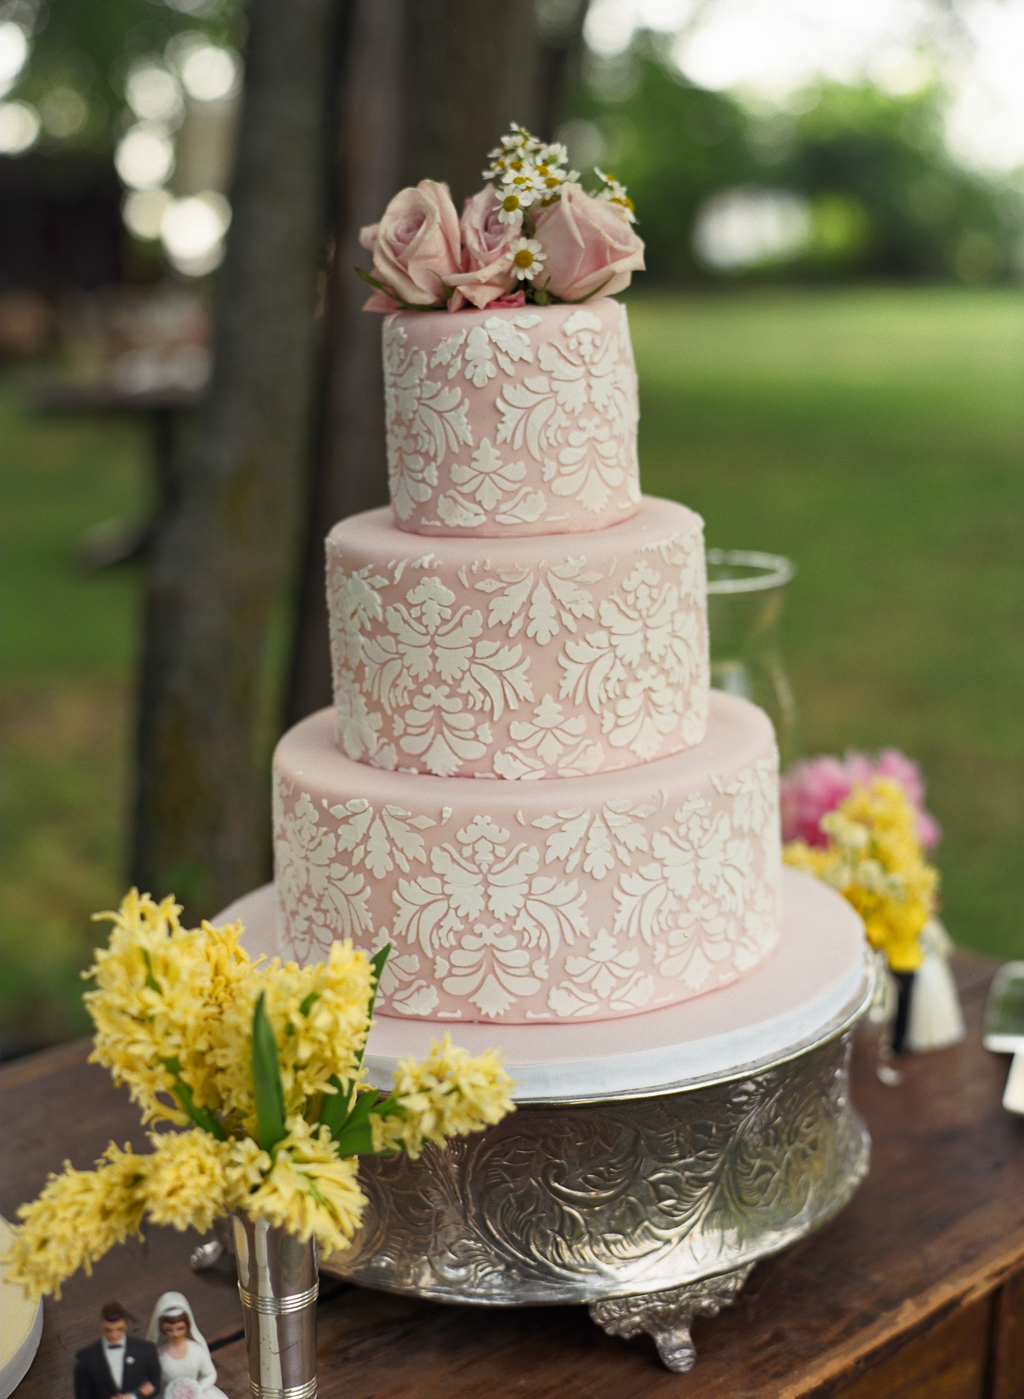 Cake Designs For Wedding : Beautiful Vintage Wedding Cakes Design - Wedding Cakes